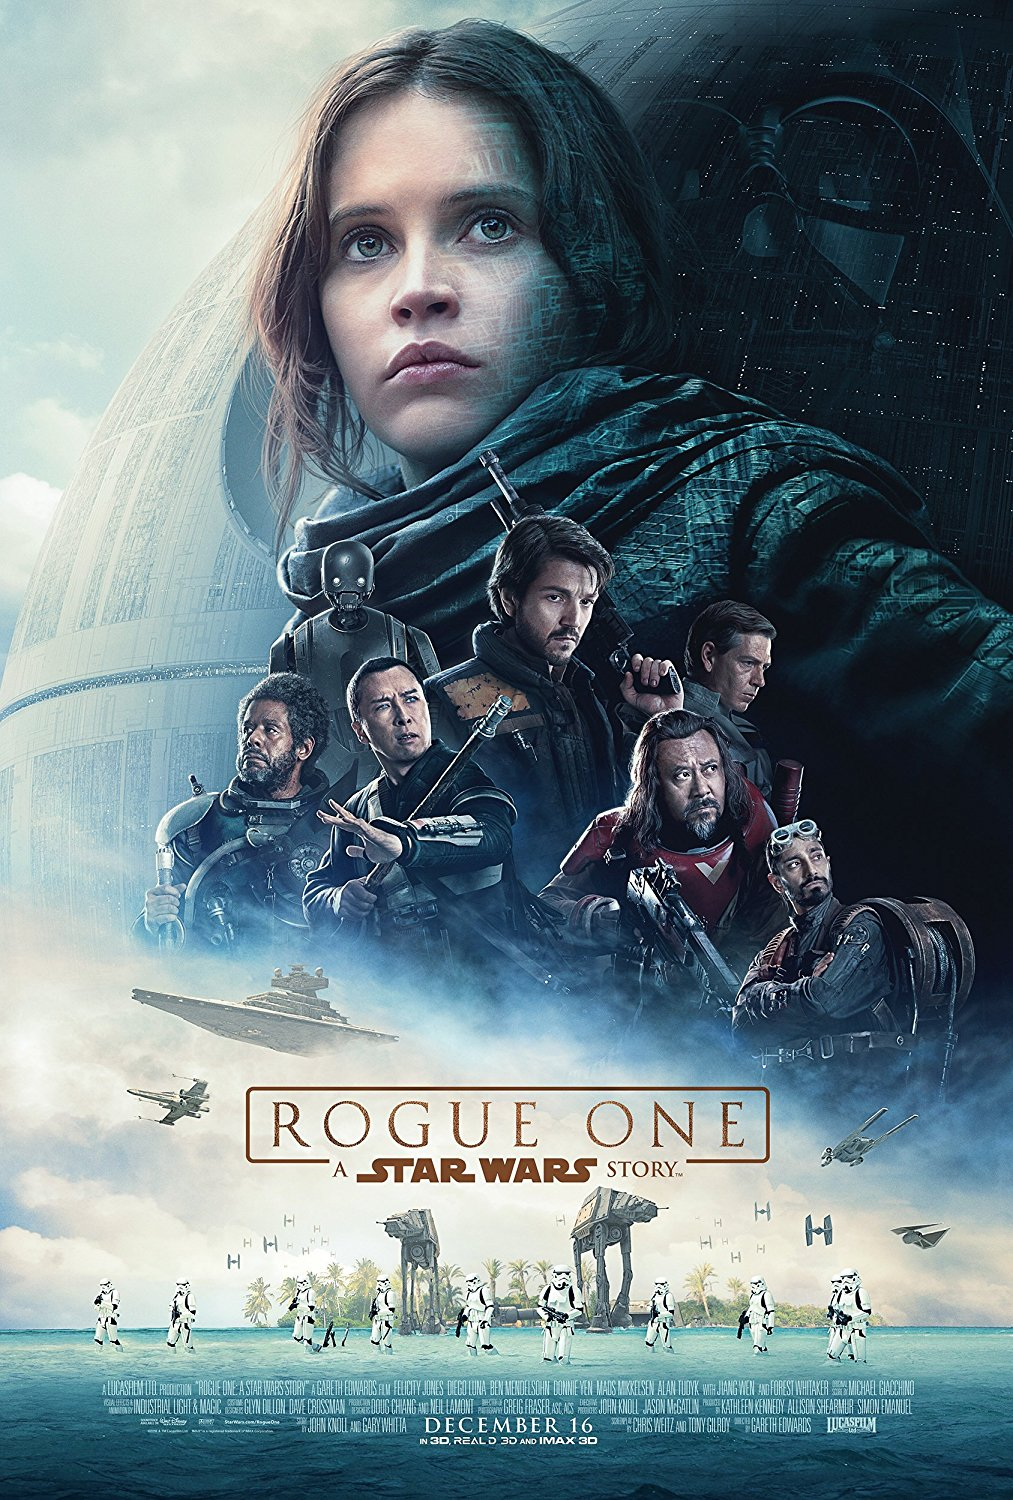 Rogue one, A Star Wars Story. Creature costume makers